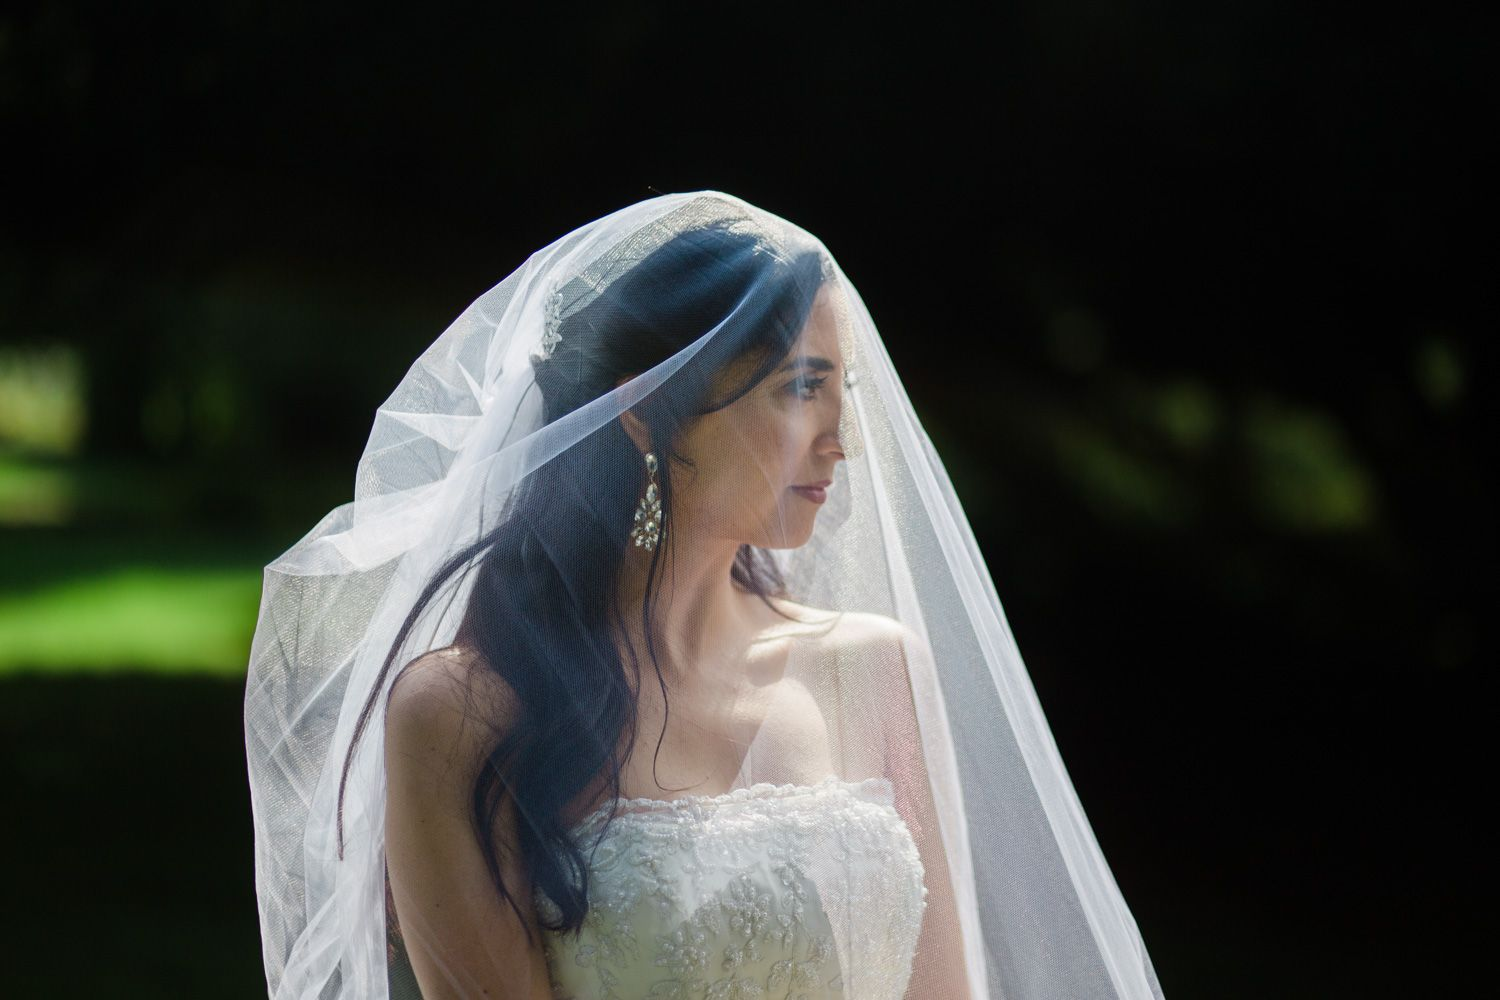 Portrait of bride wearing a veil